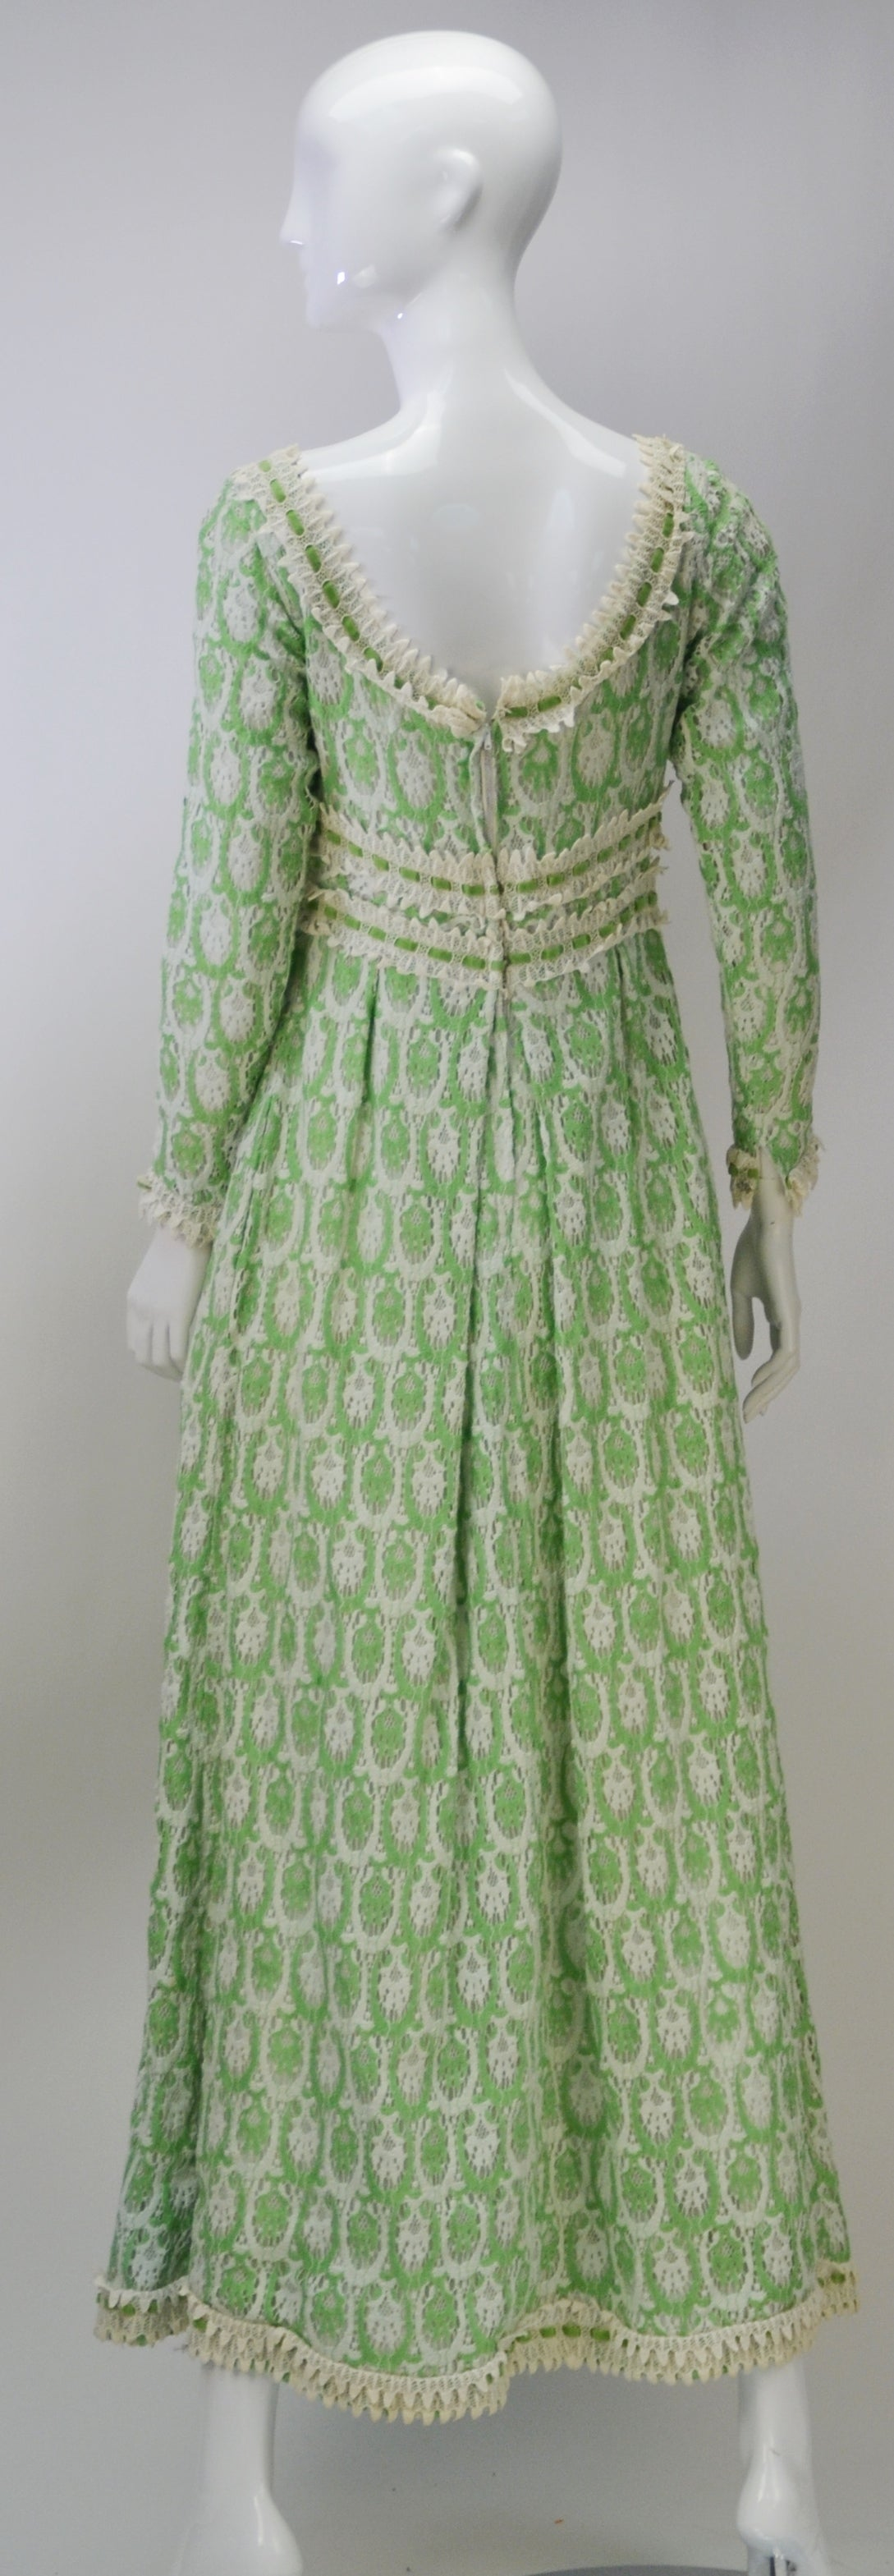 Gray 1970s Lillie Rubin Green and White Lace Dress For Sale